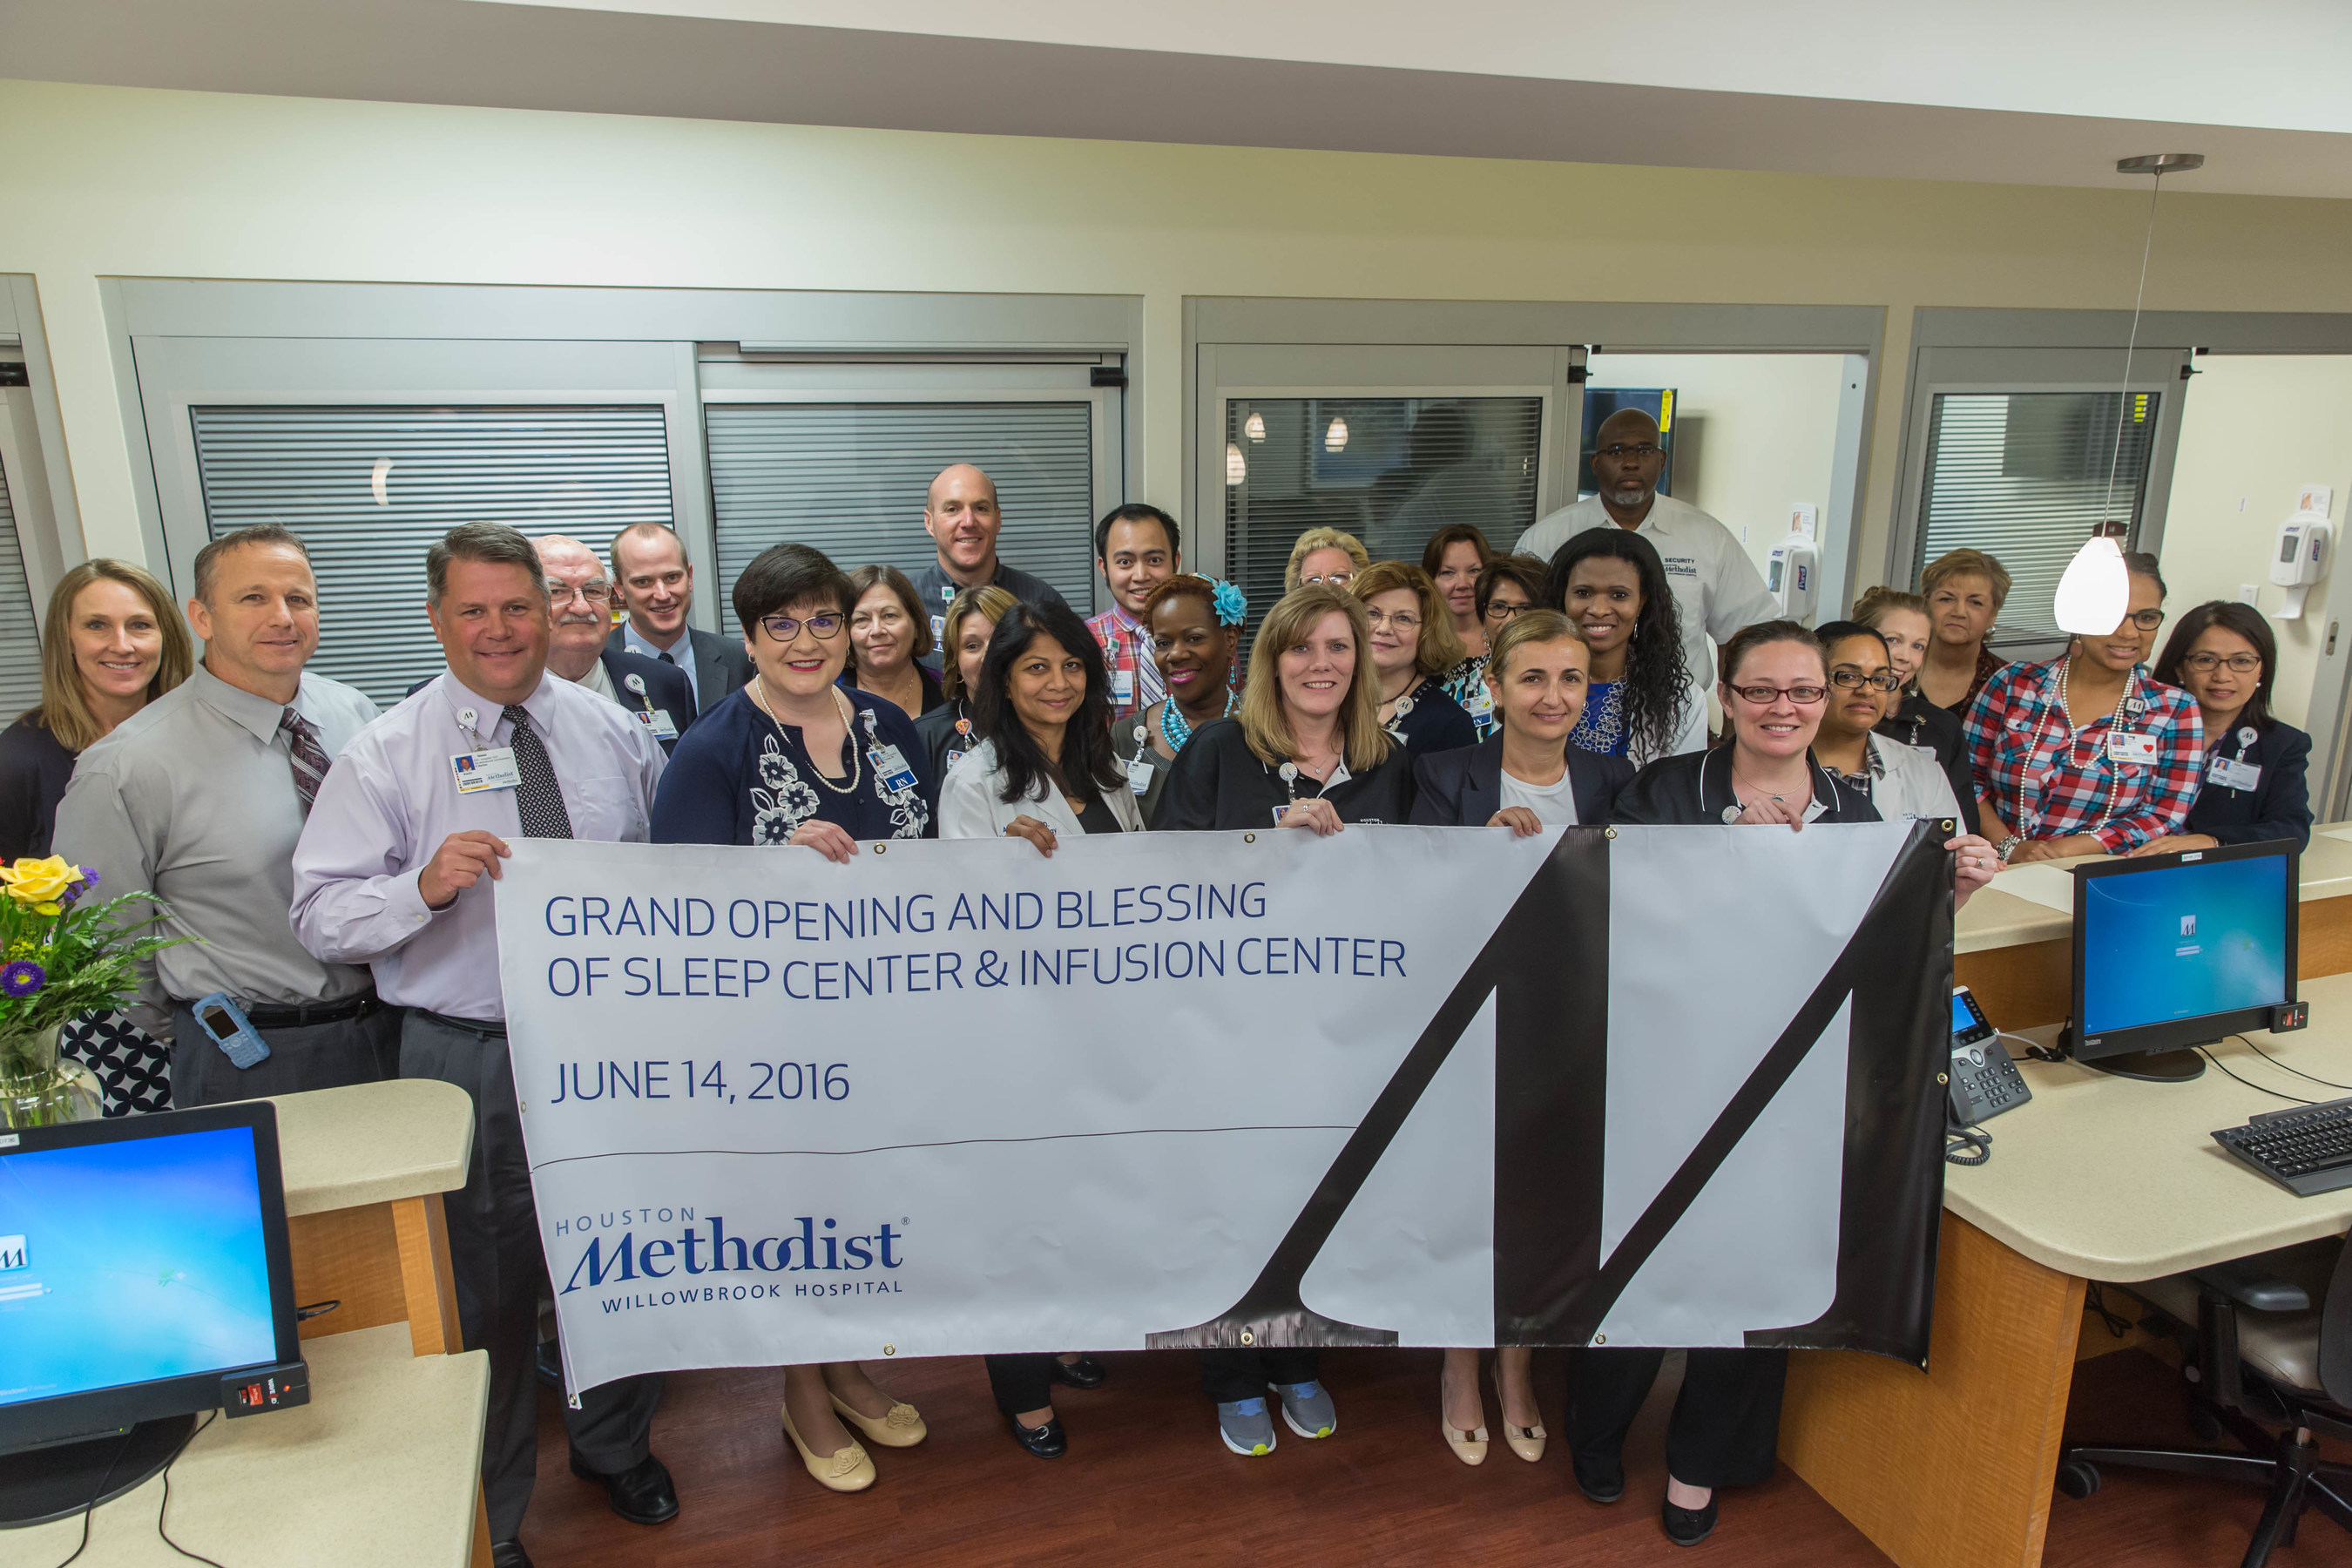 Houston Methodist Willowbrook Hospital celebrates opening of new Sleep Center and Infusion Center.